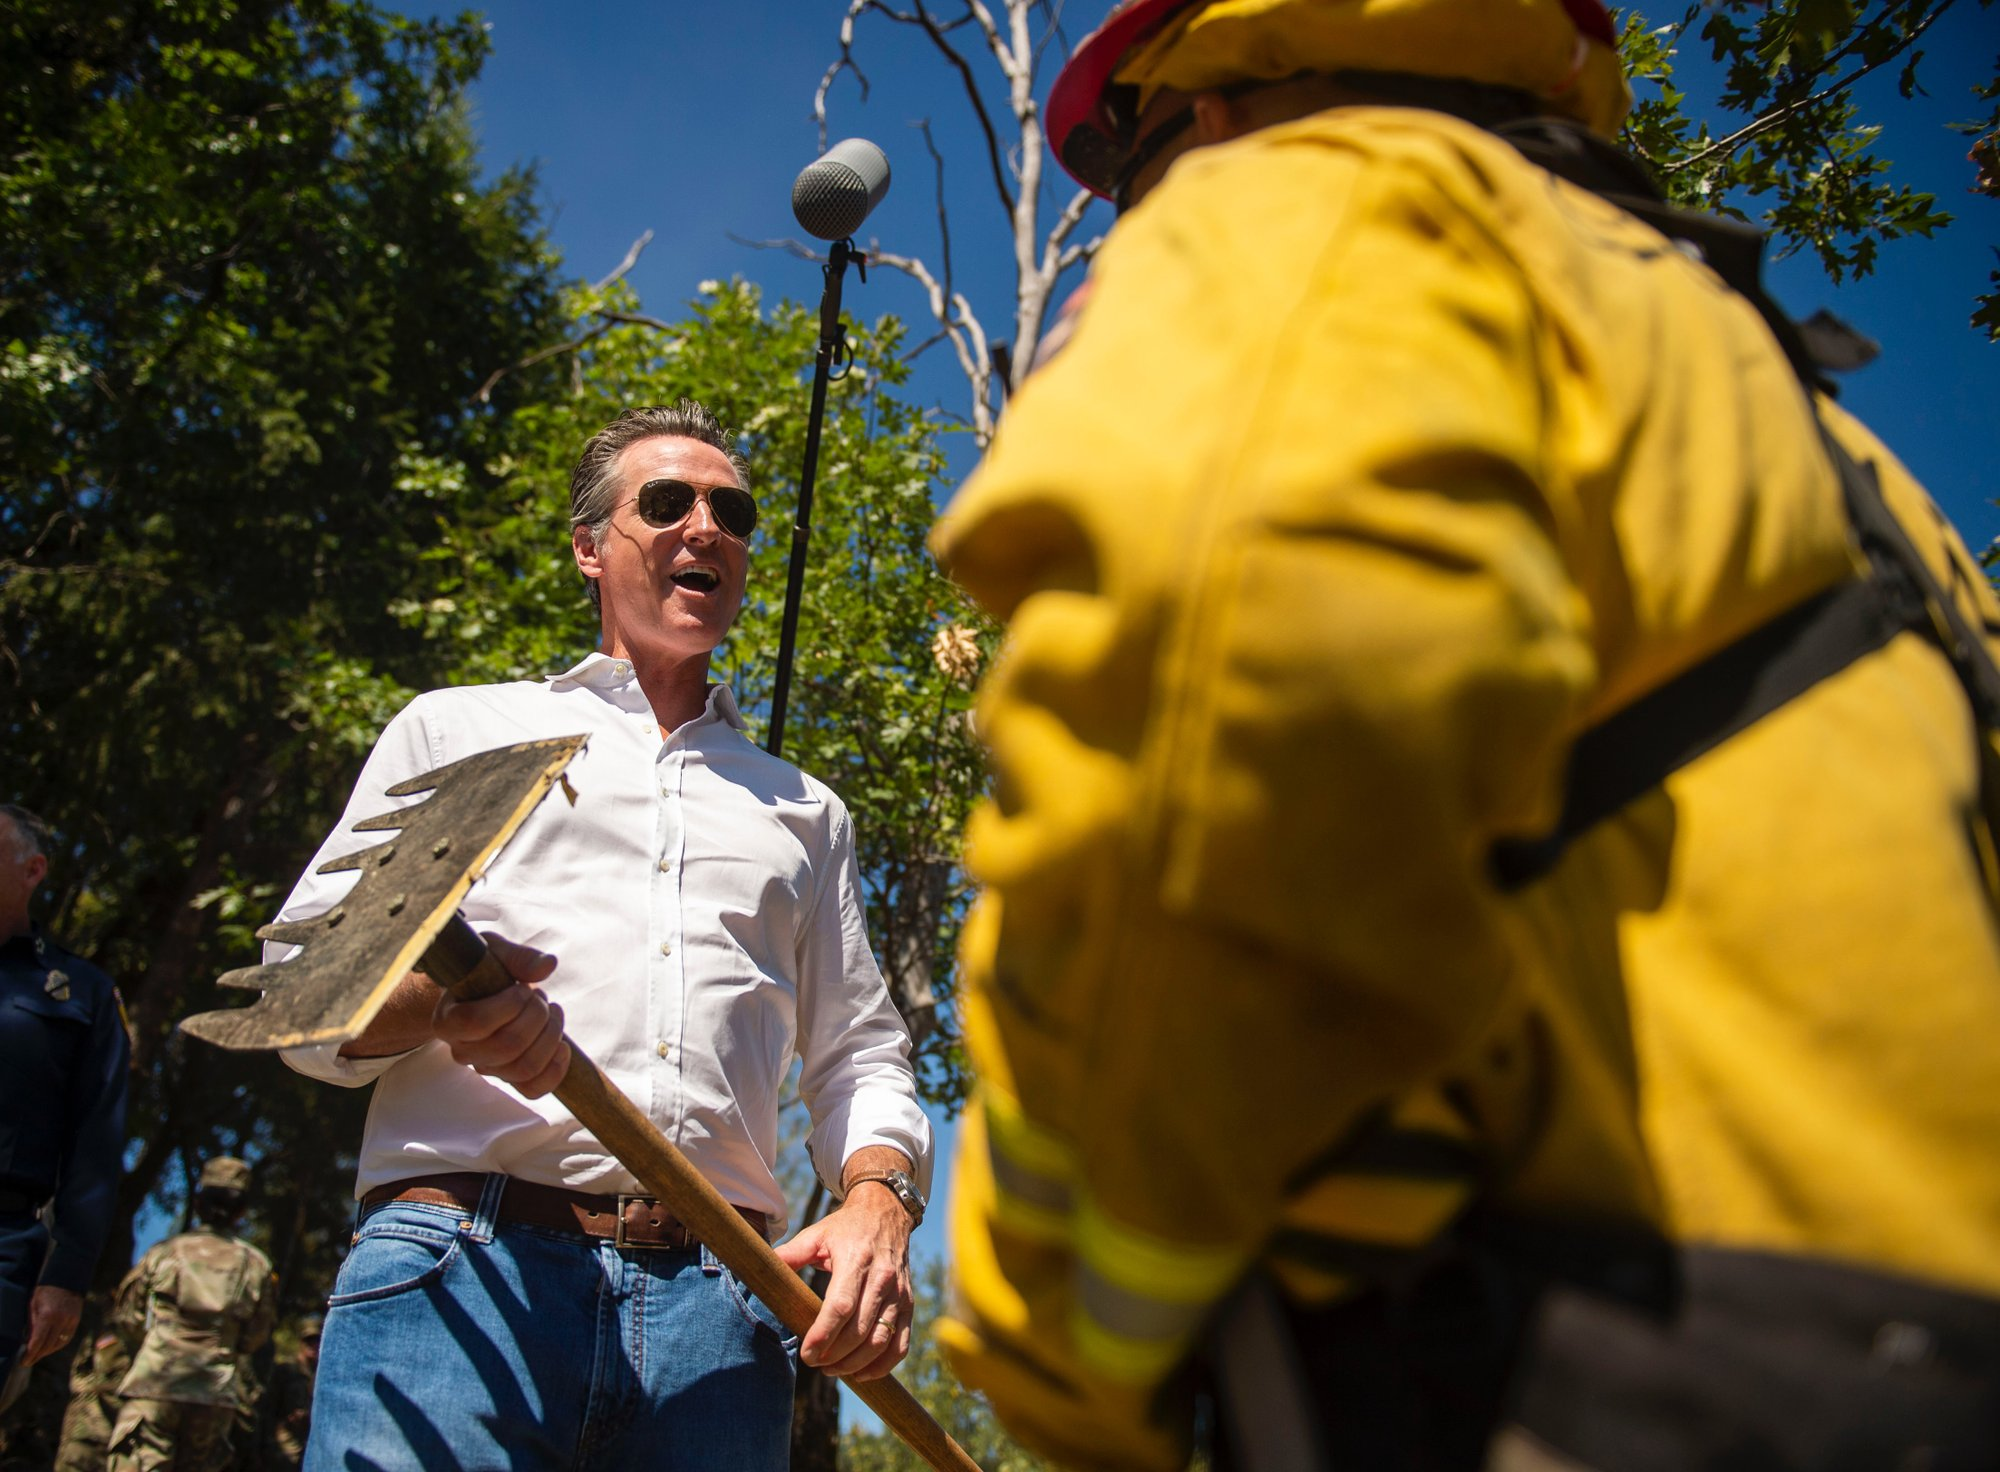 California governor defends wildfire efforts, jabs at feds